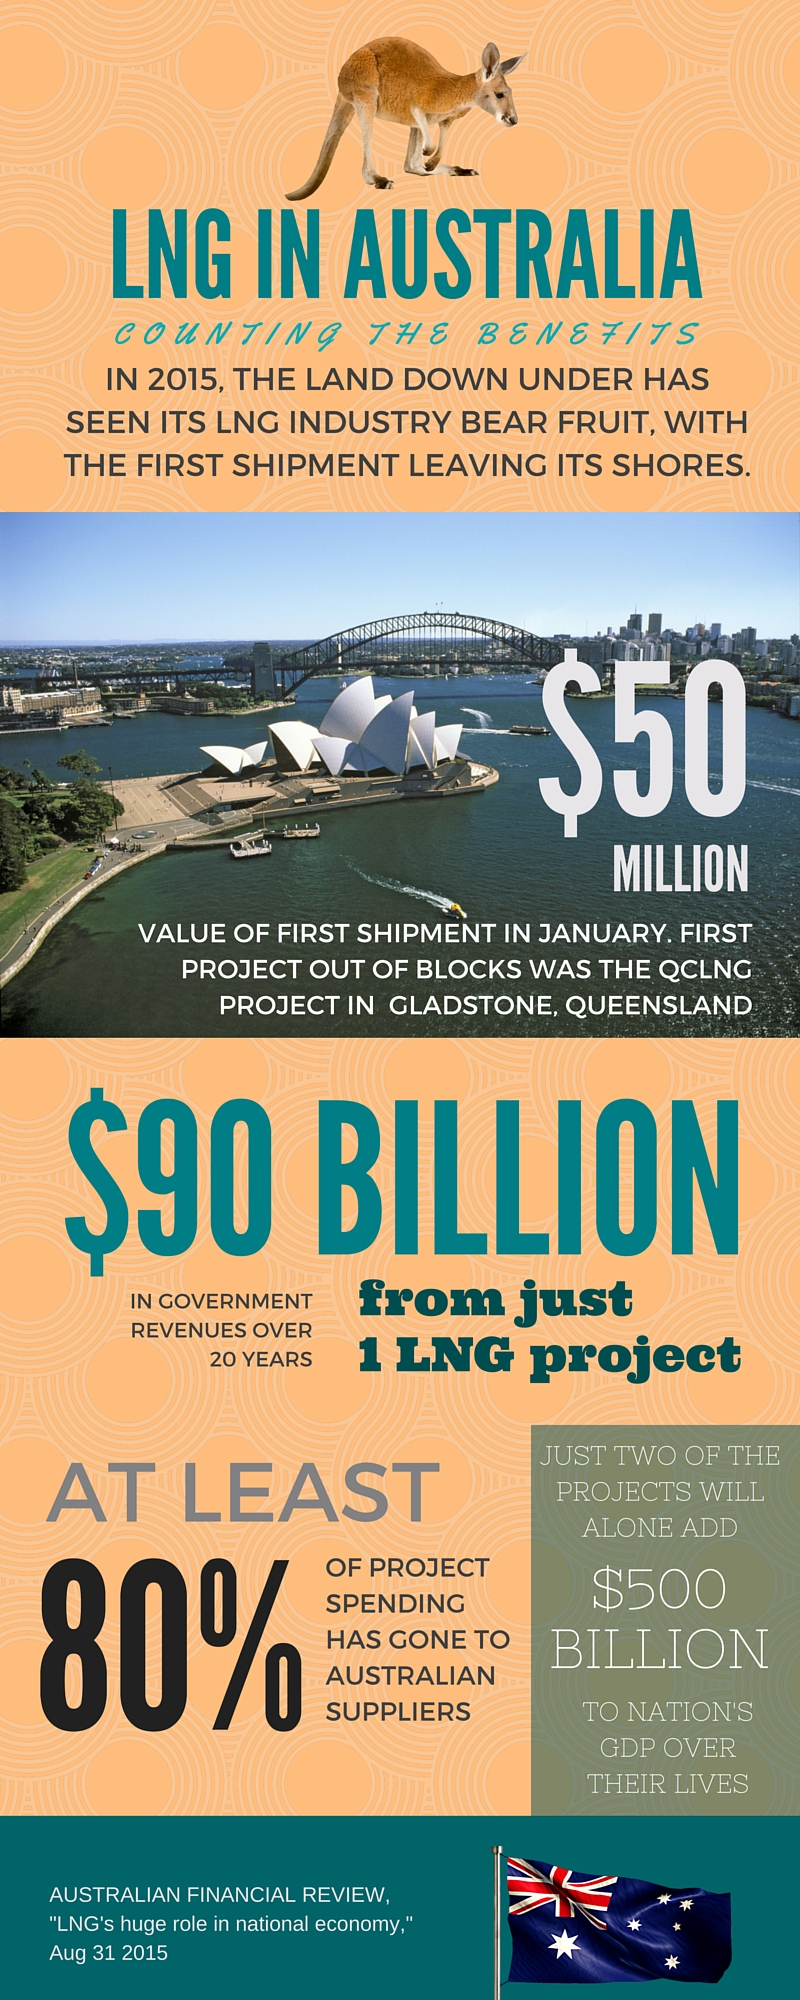 LNG_IN_AUSTRALIA-_Counting_the_benefits.jpg